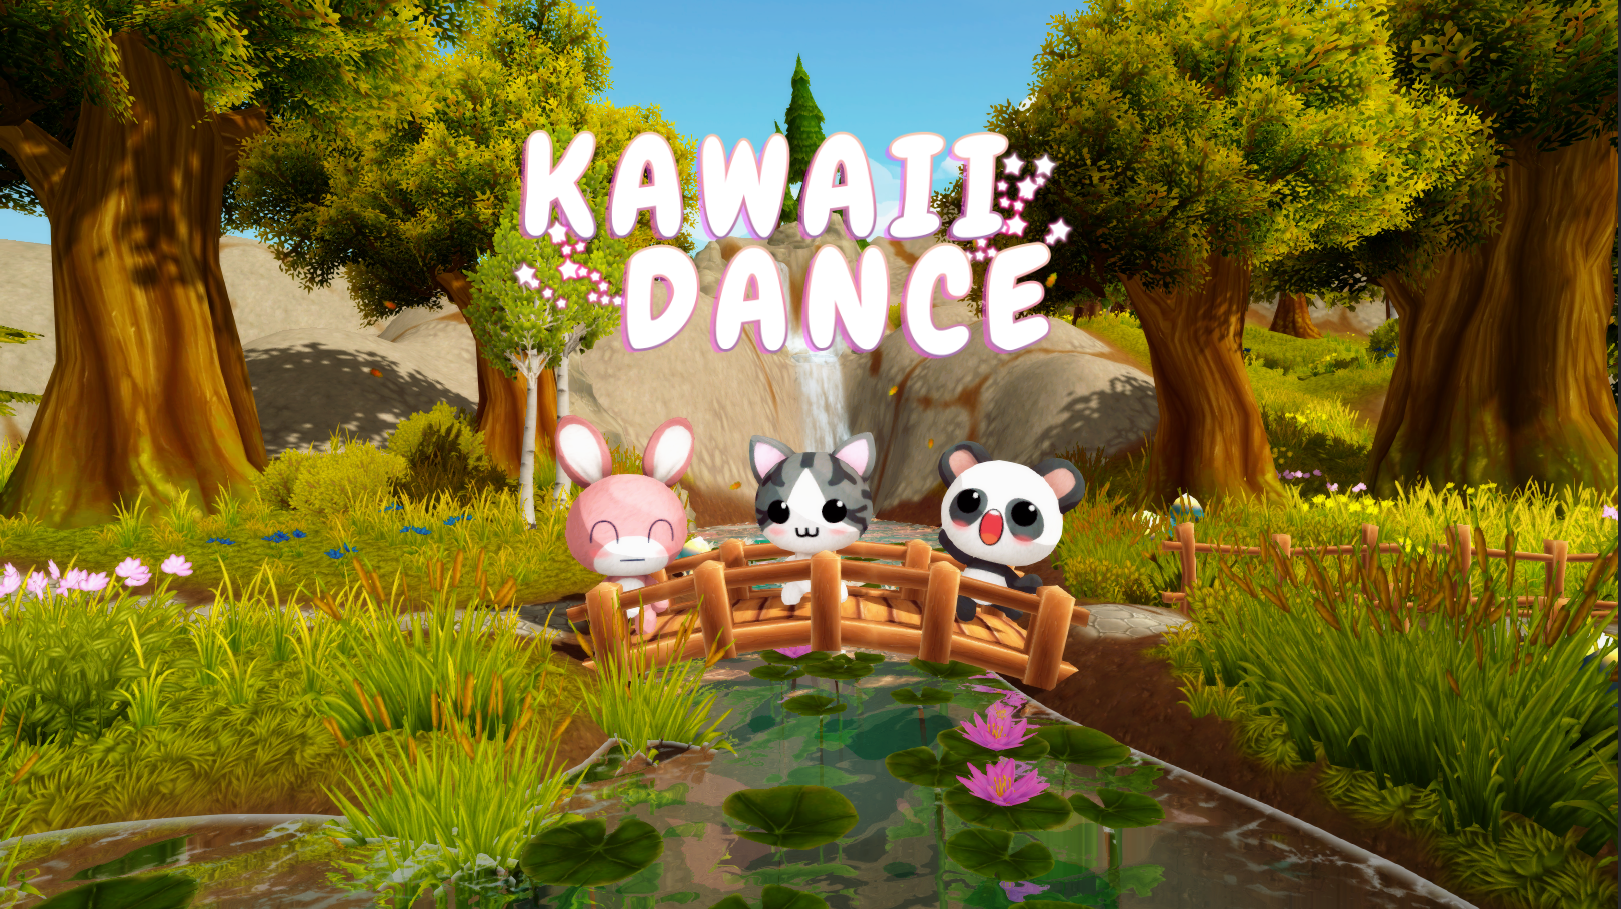 Kawaii Dance